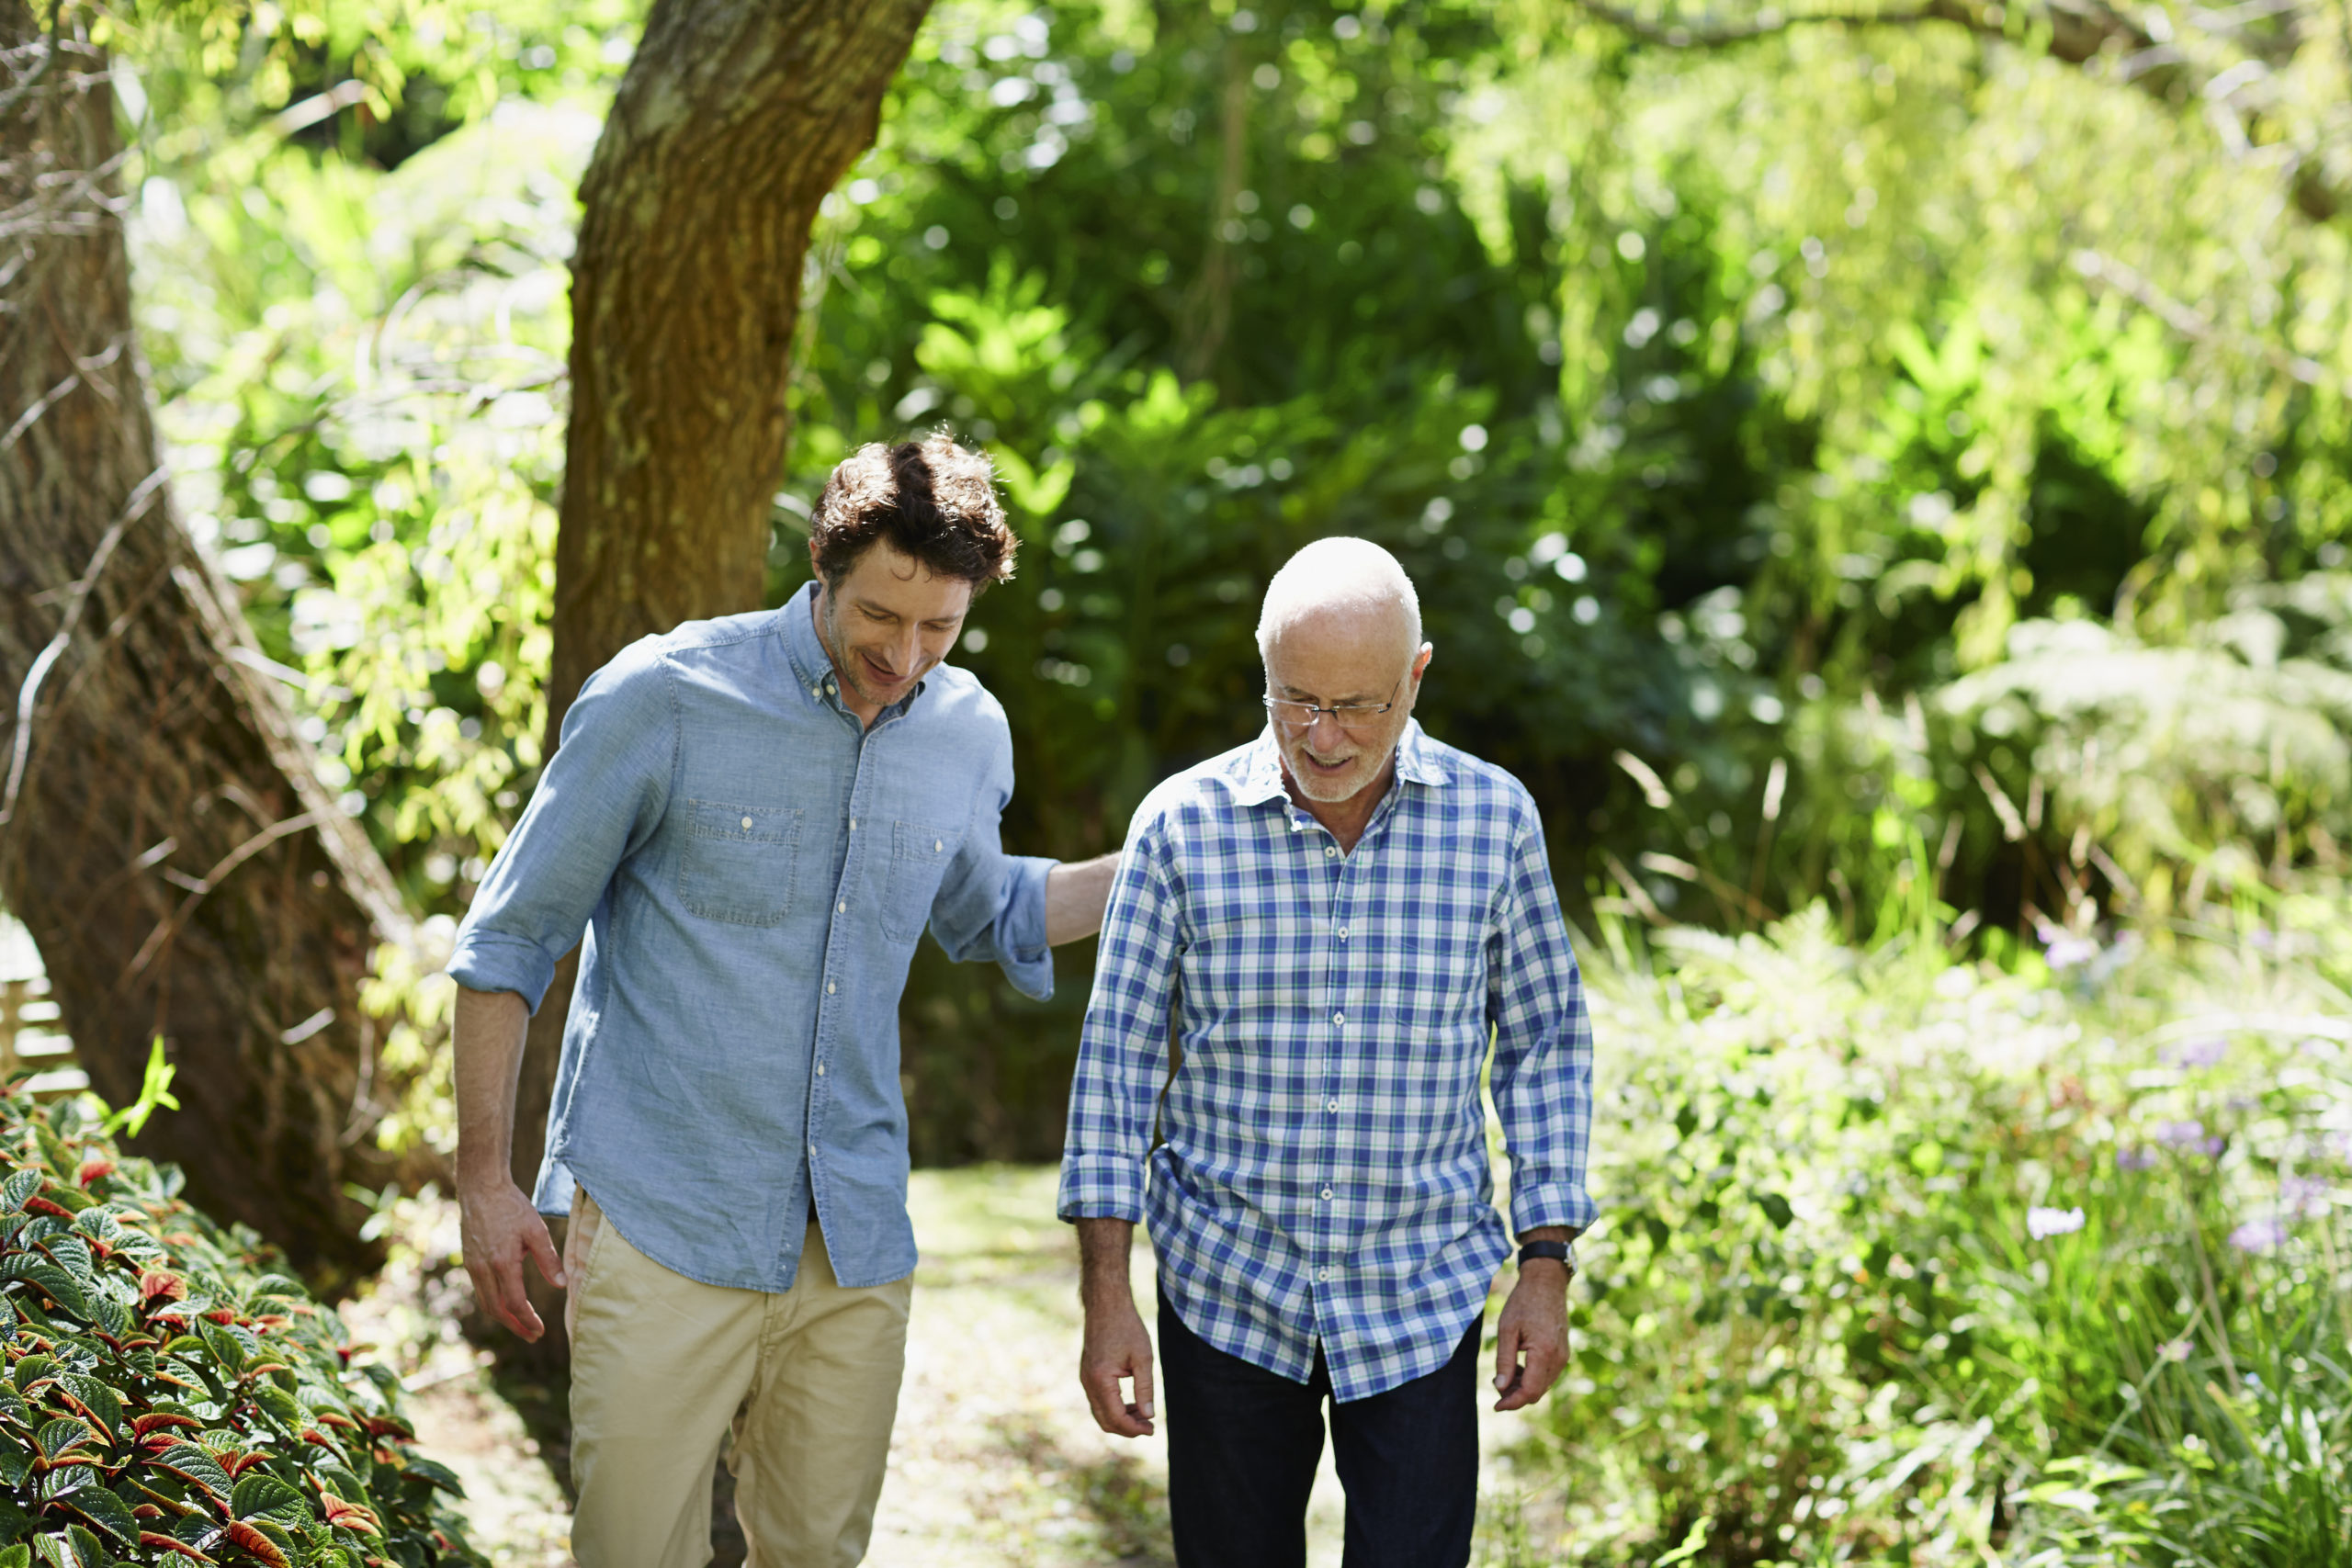 Son walking outdoors with senior male